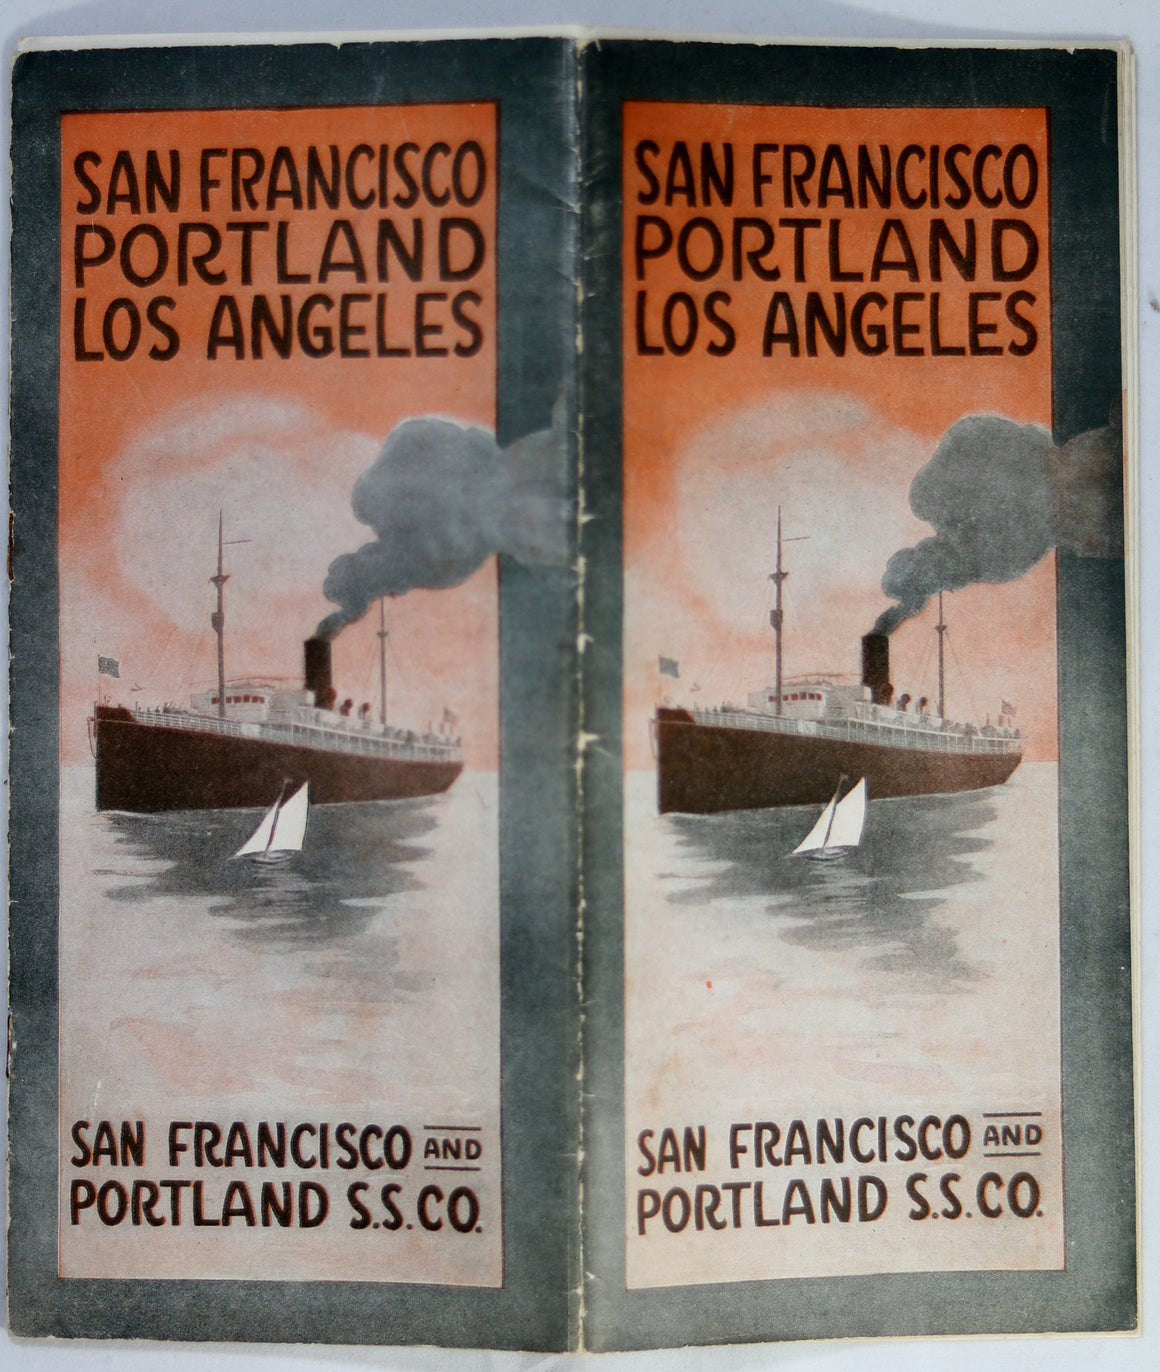 1910s pamphlet for San Francisco and Portland Steam Ship Company